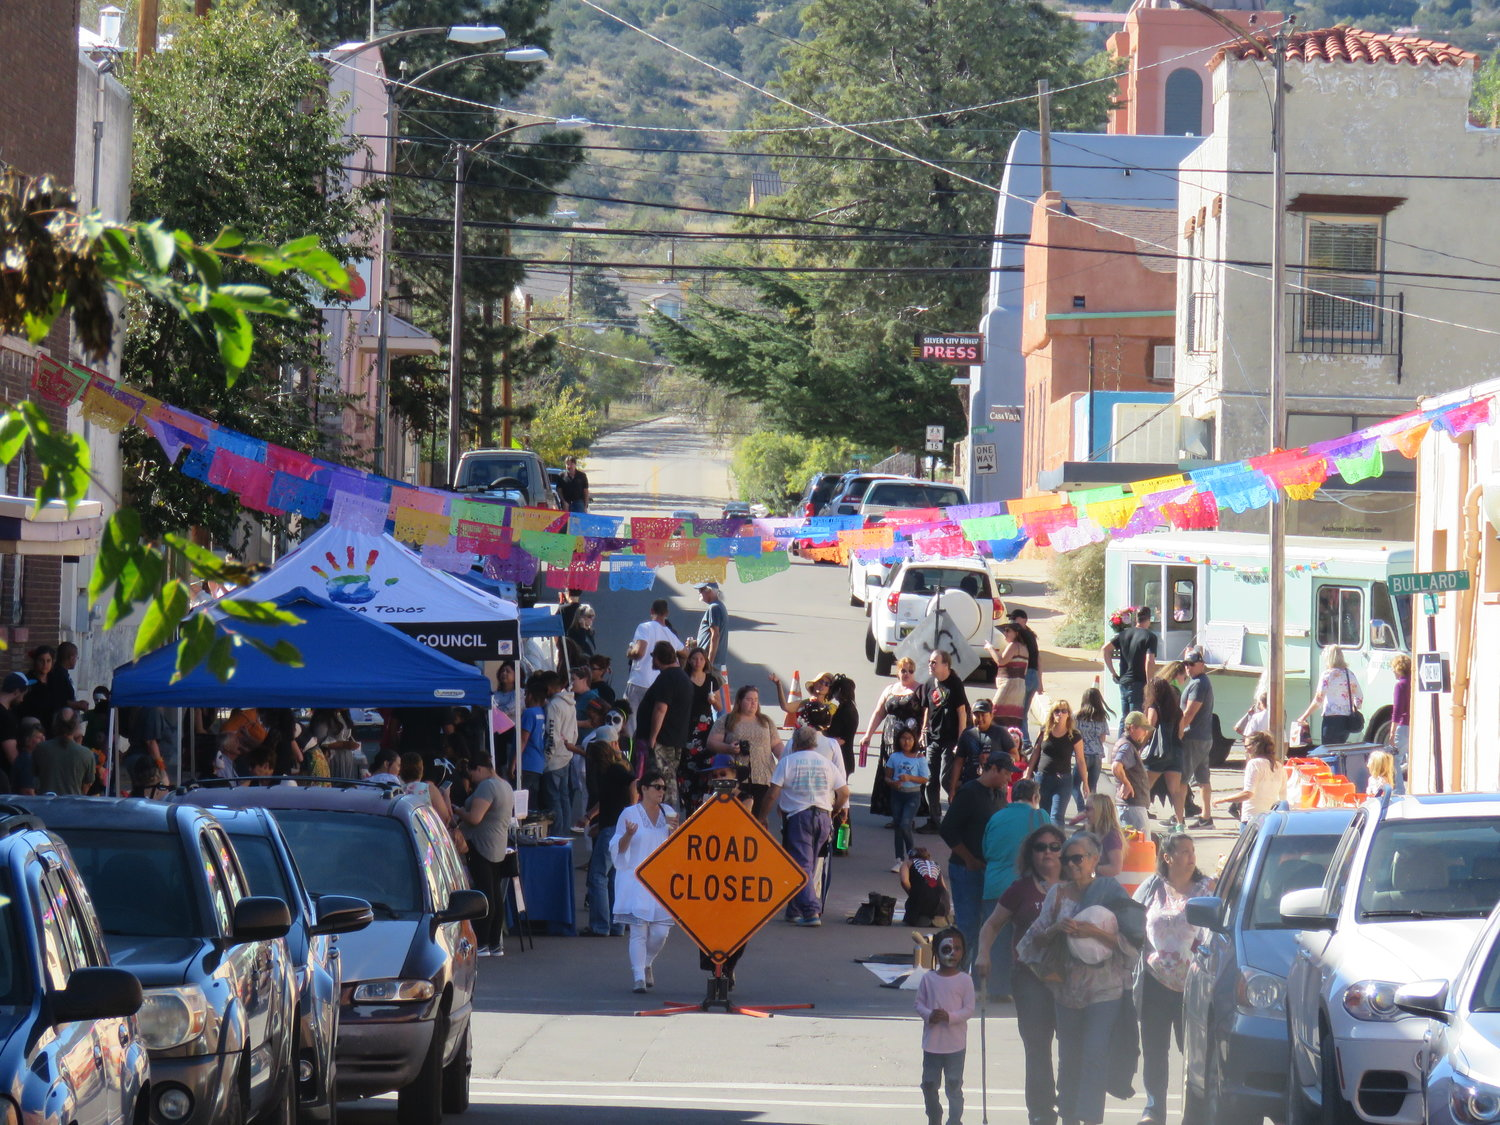 The Dia de los Muertos street festival is cause for celebration in Silver City.